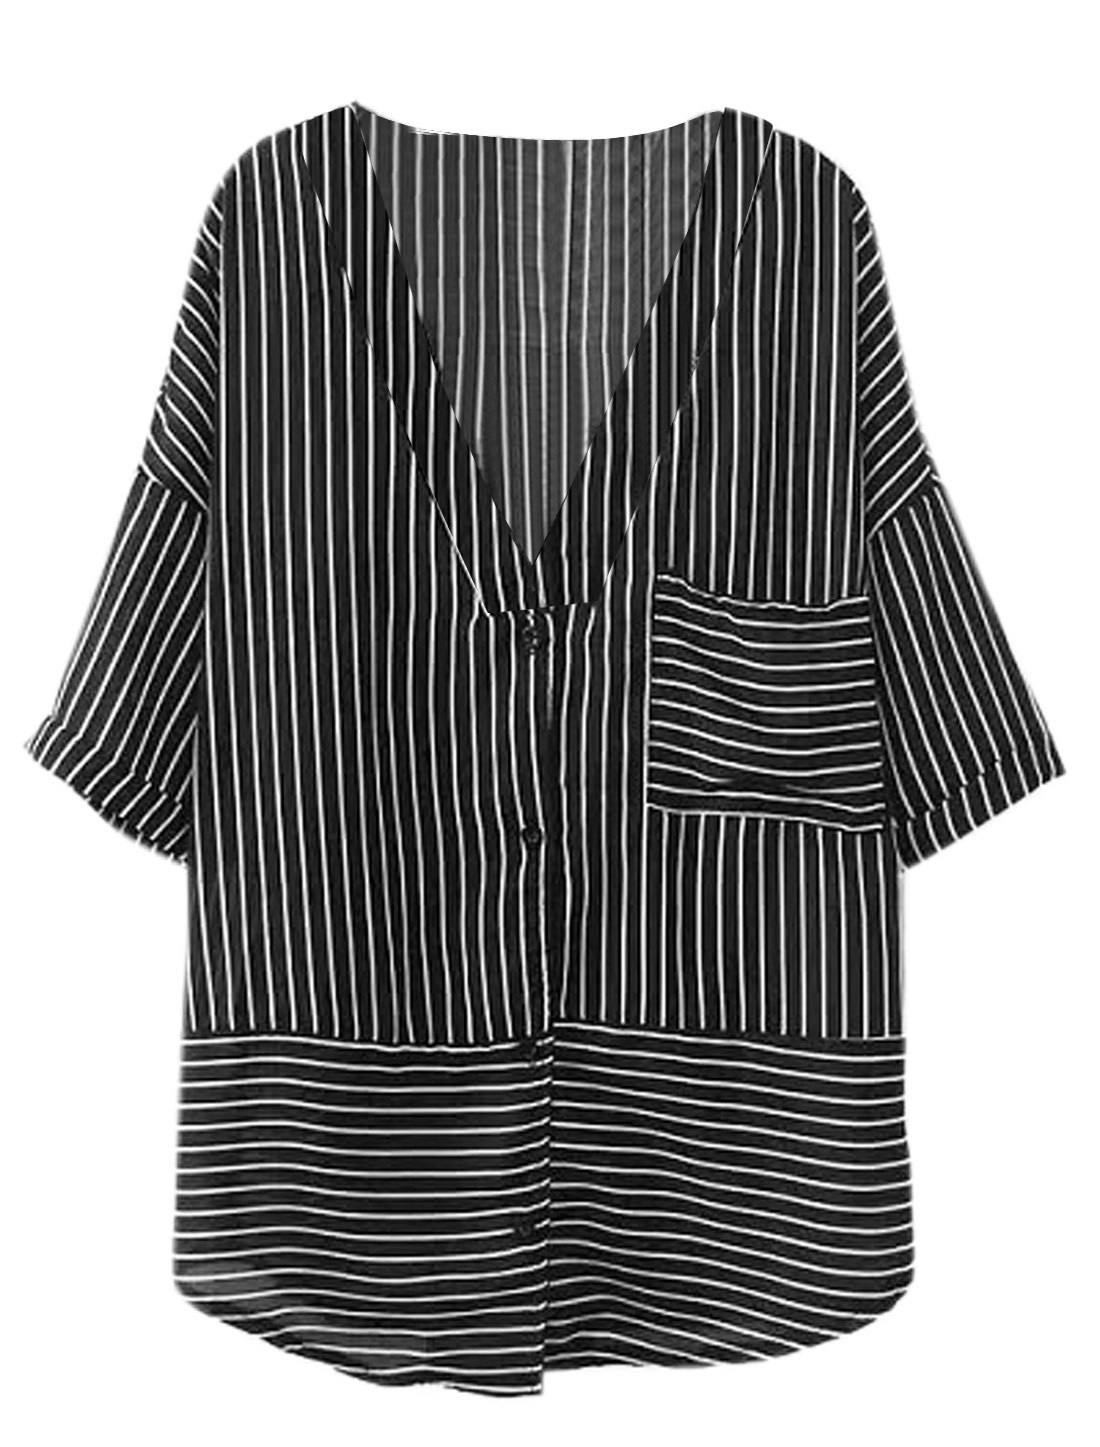 Lady Deep V Neck Half Batwing Sleeve Stripes Single Breasted Shirt Black S